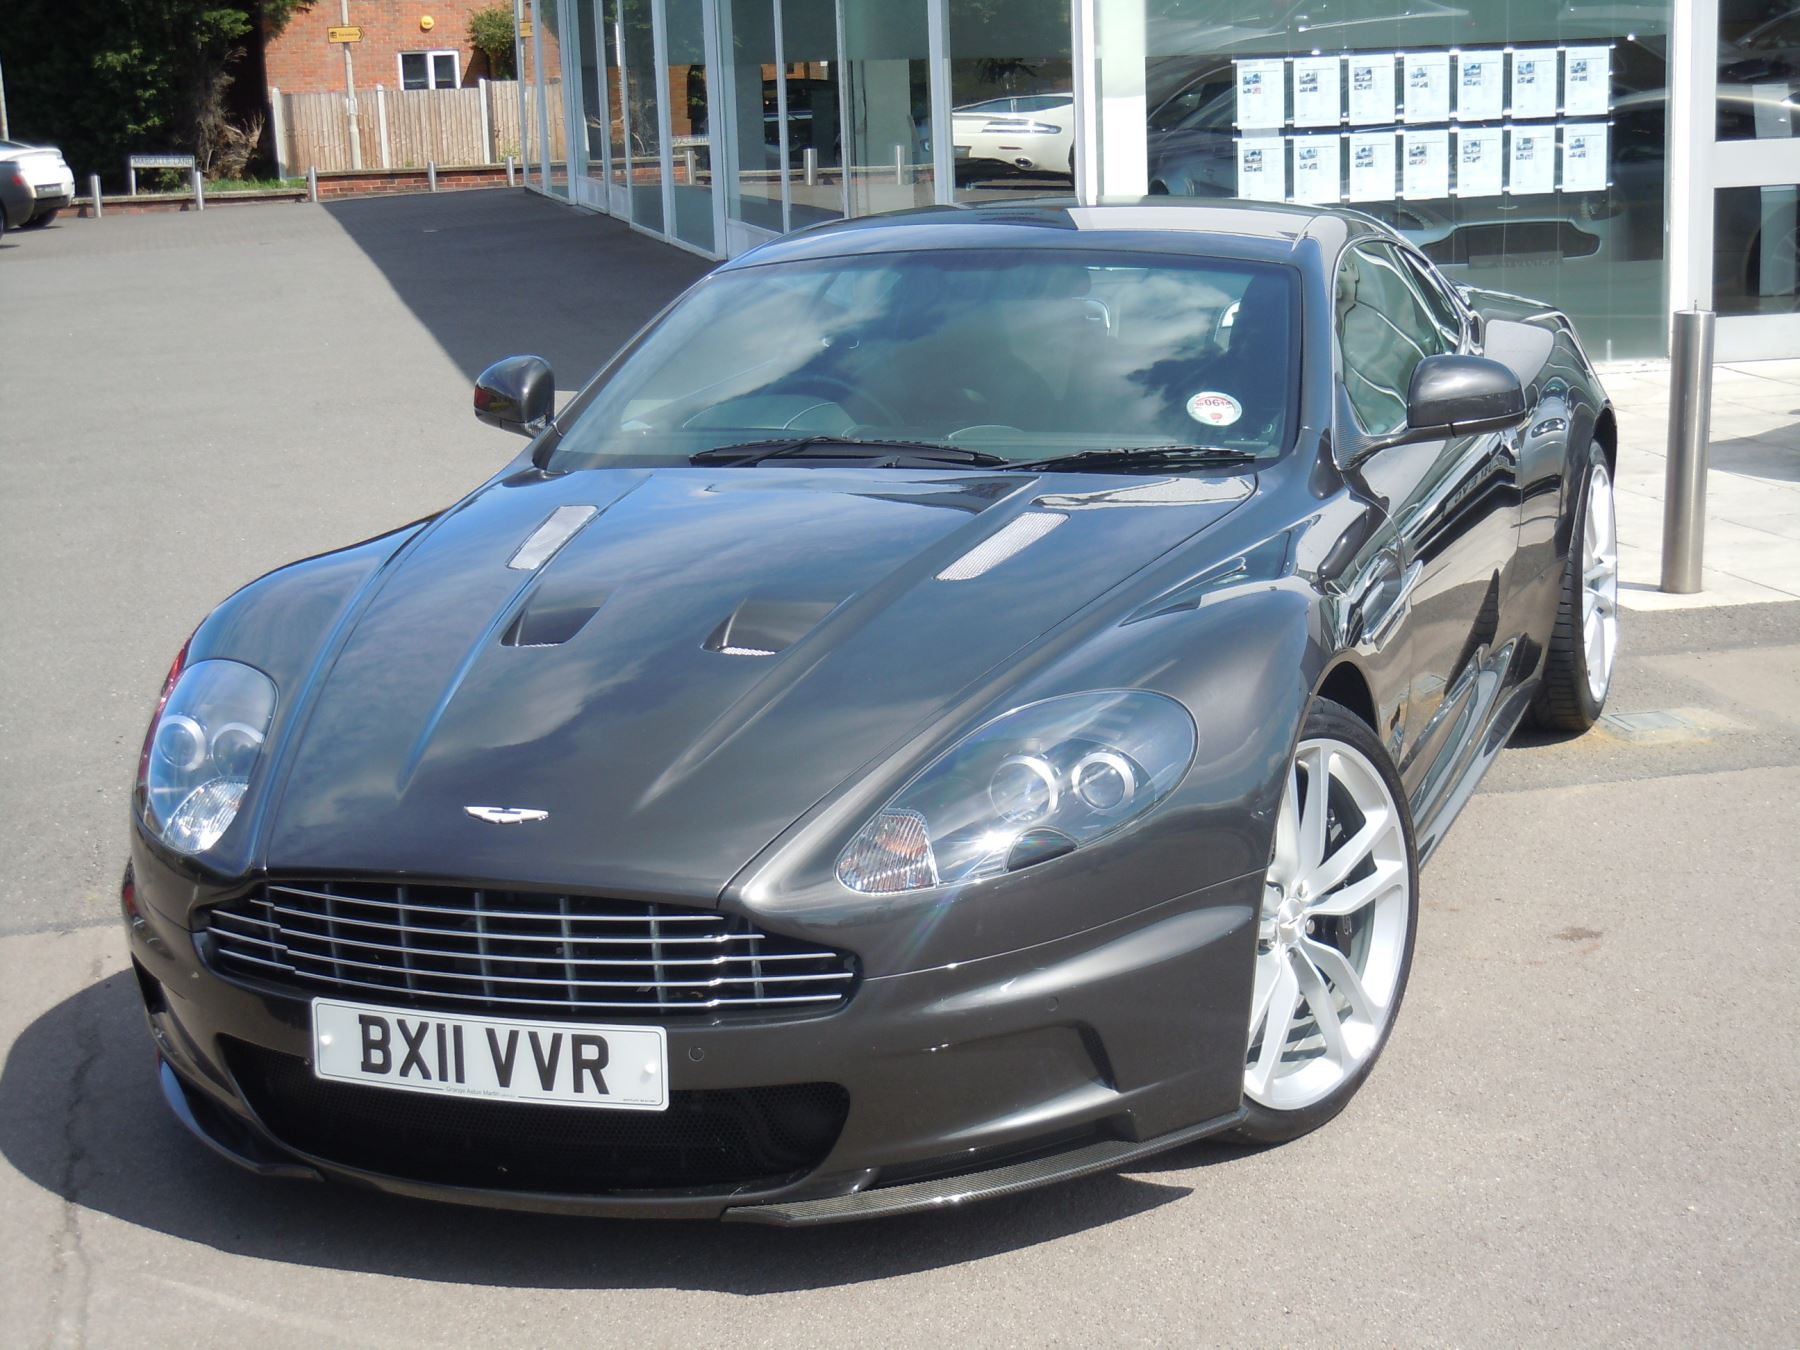 Aston Martin DBS V12 2dr Touchtronic 5.9 Automatic Coupe (2010.75)